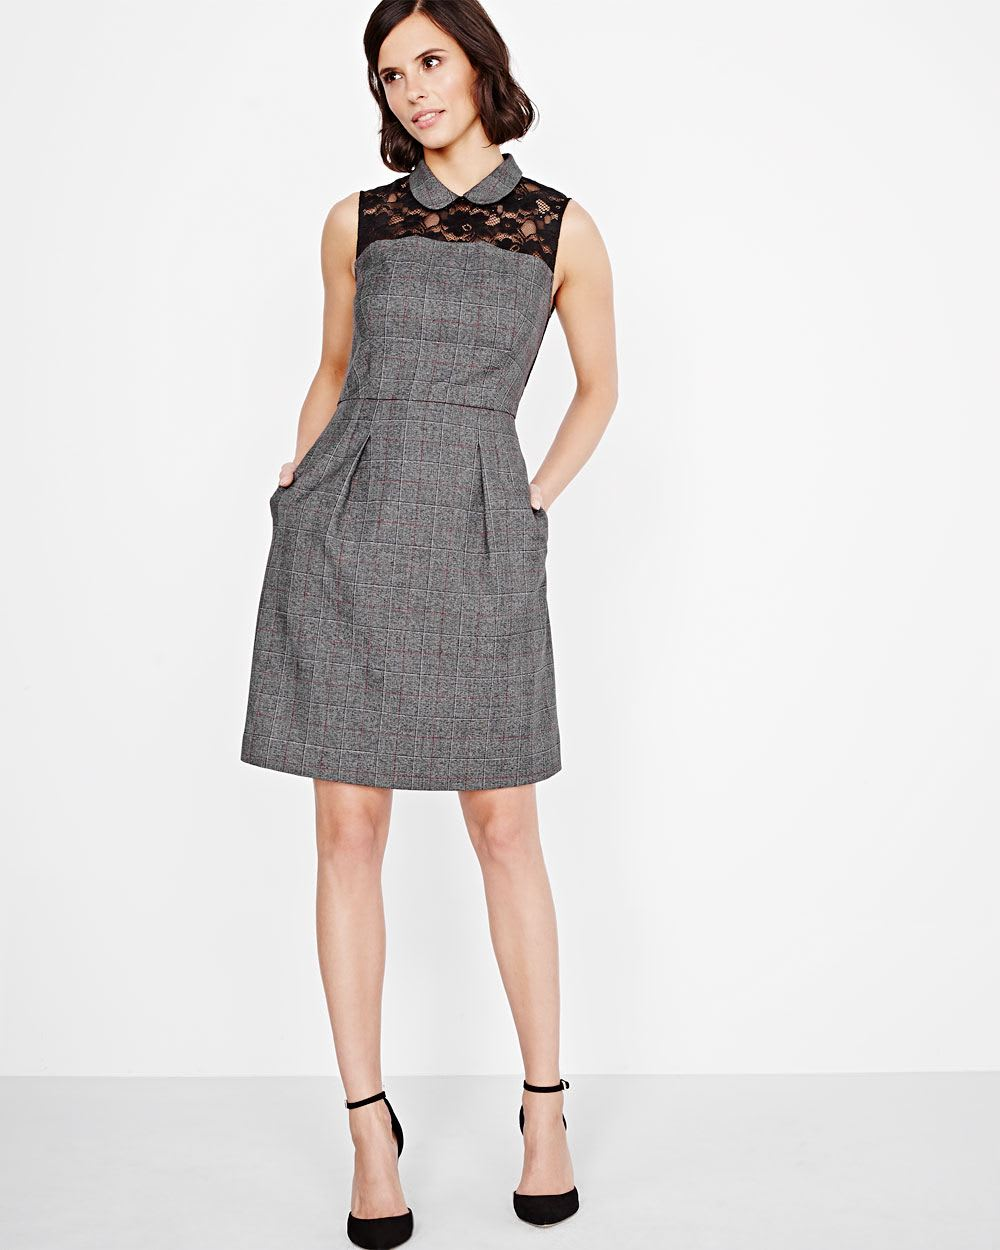 Plaid Fit and Flare Dress with lace yoke | RW&CO.